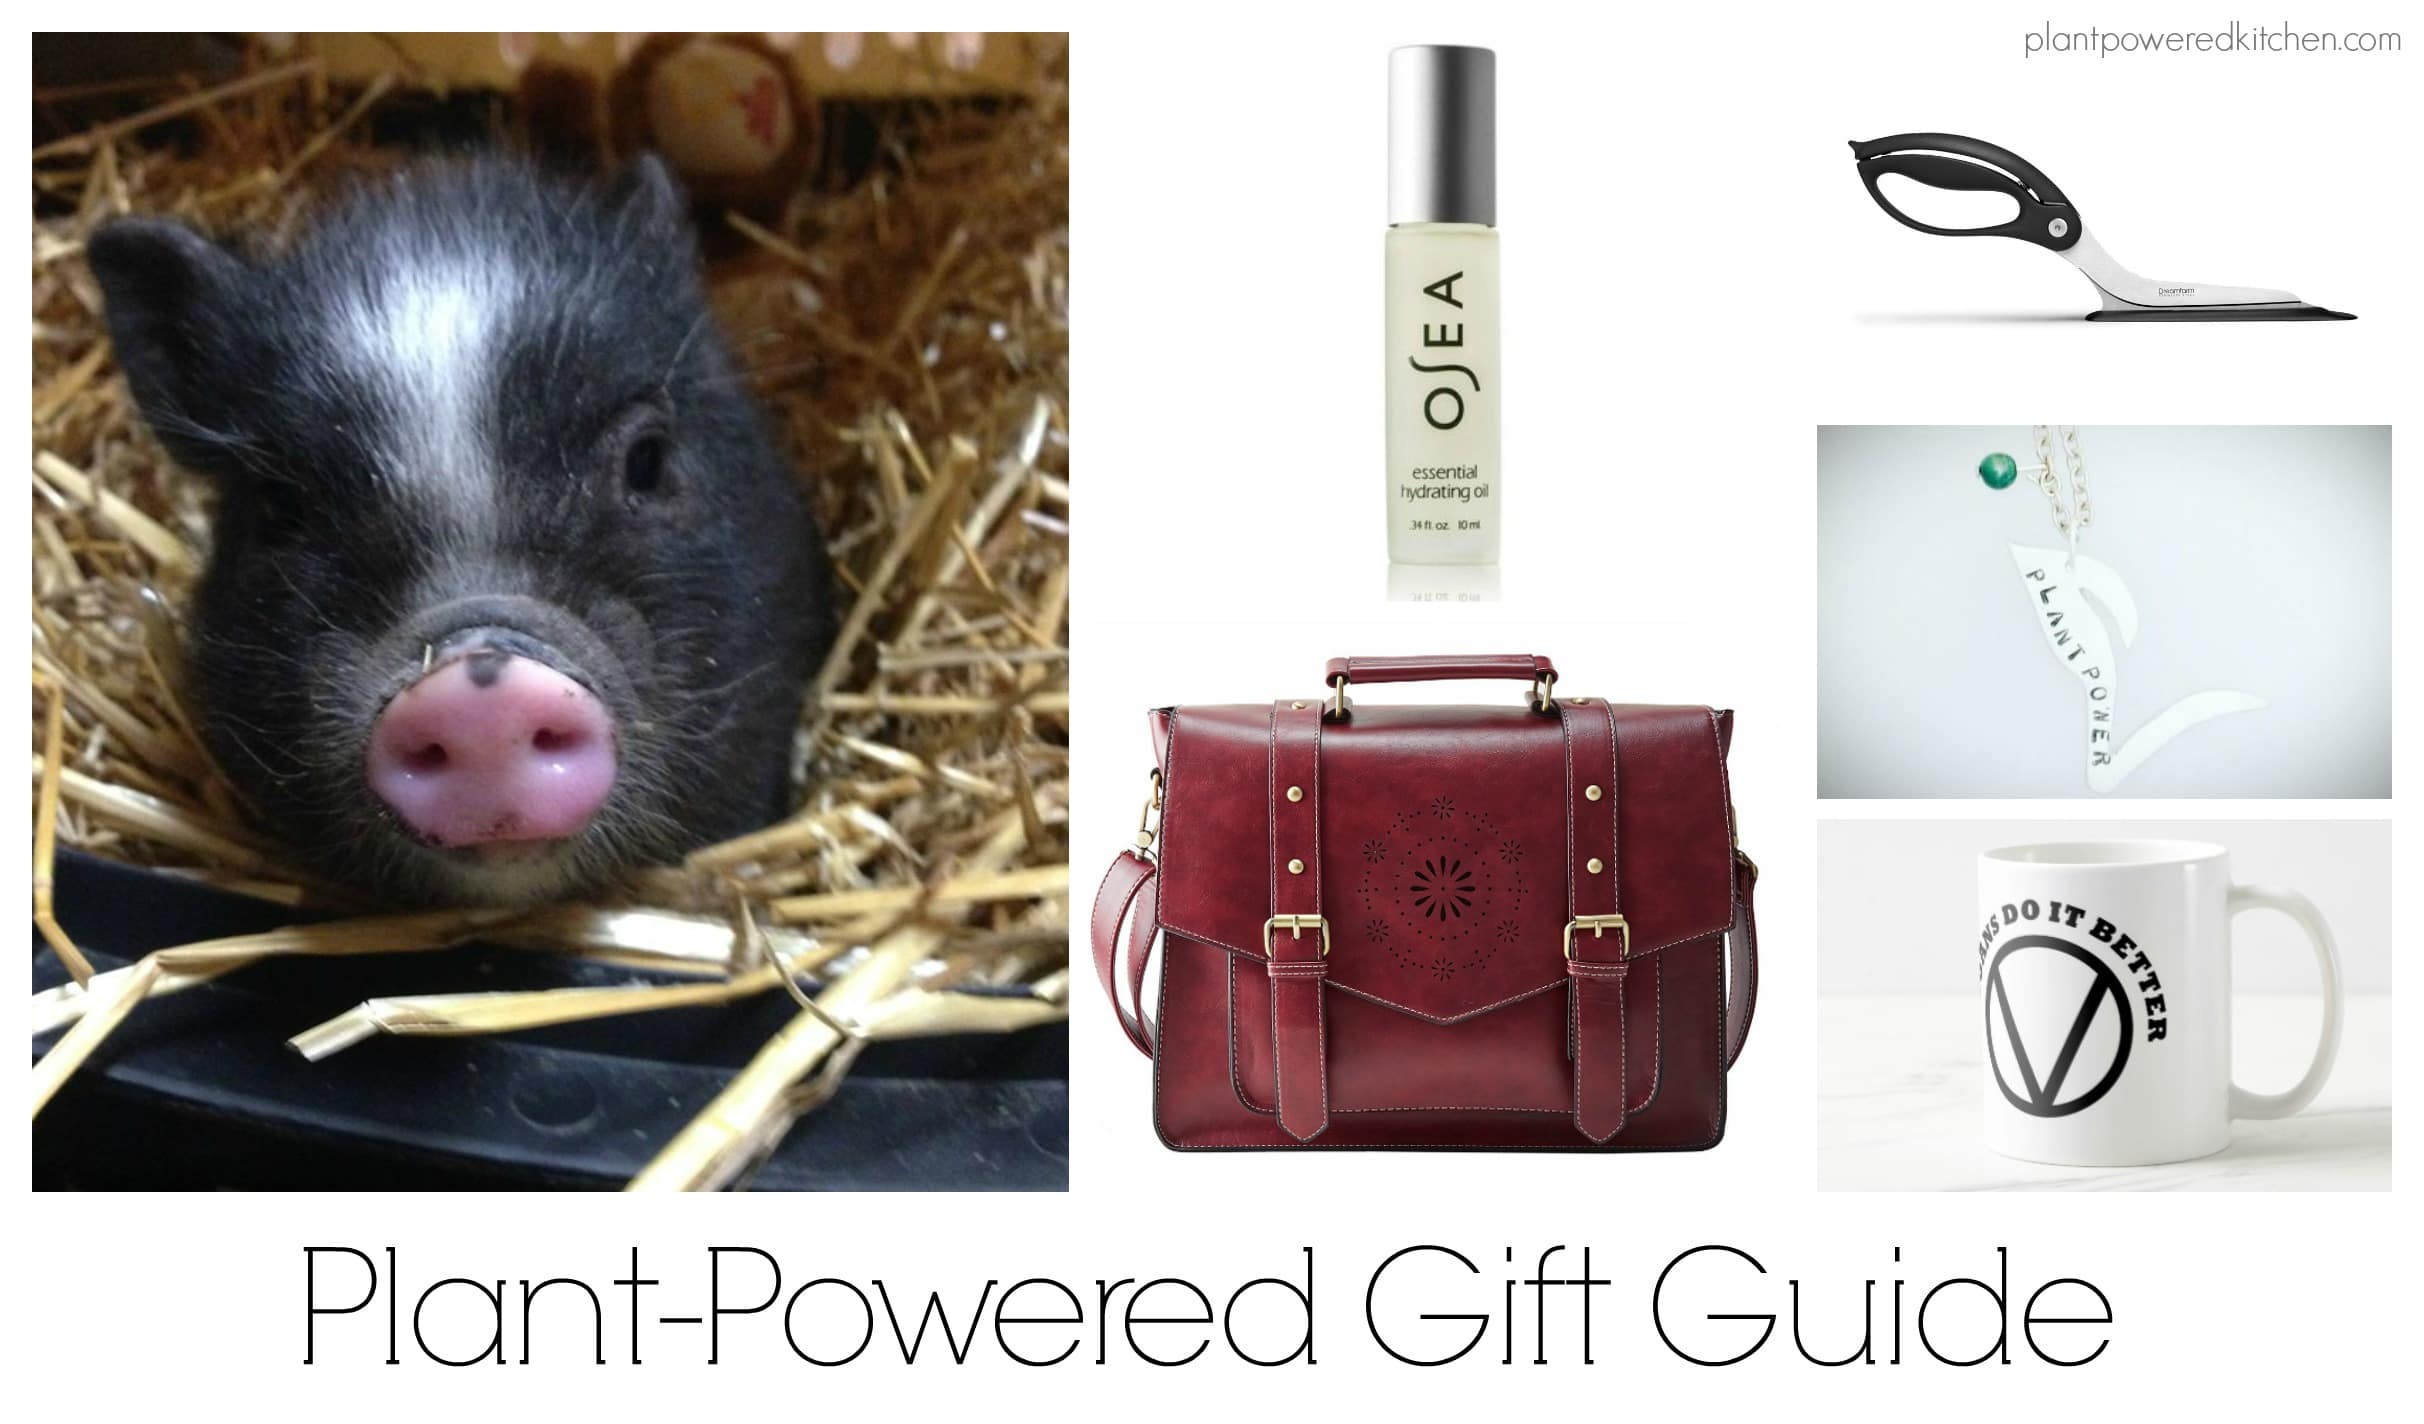 Gifts for Vegans and Plant-Powered Gifts